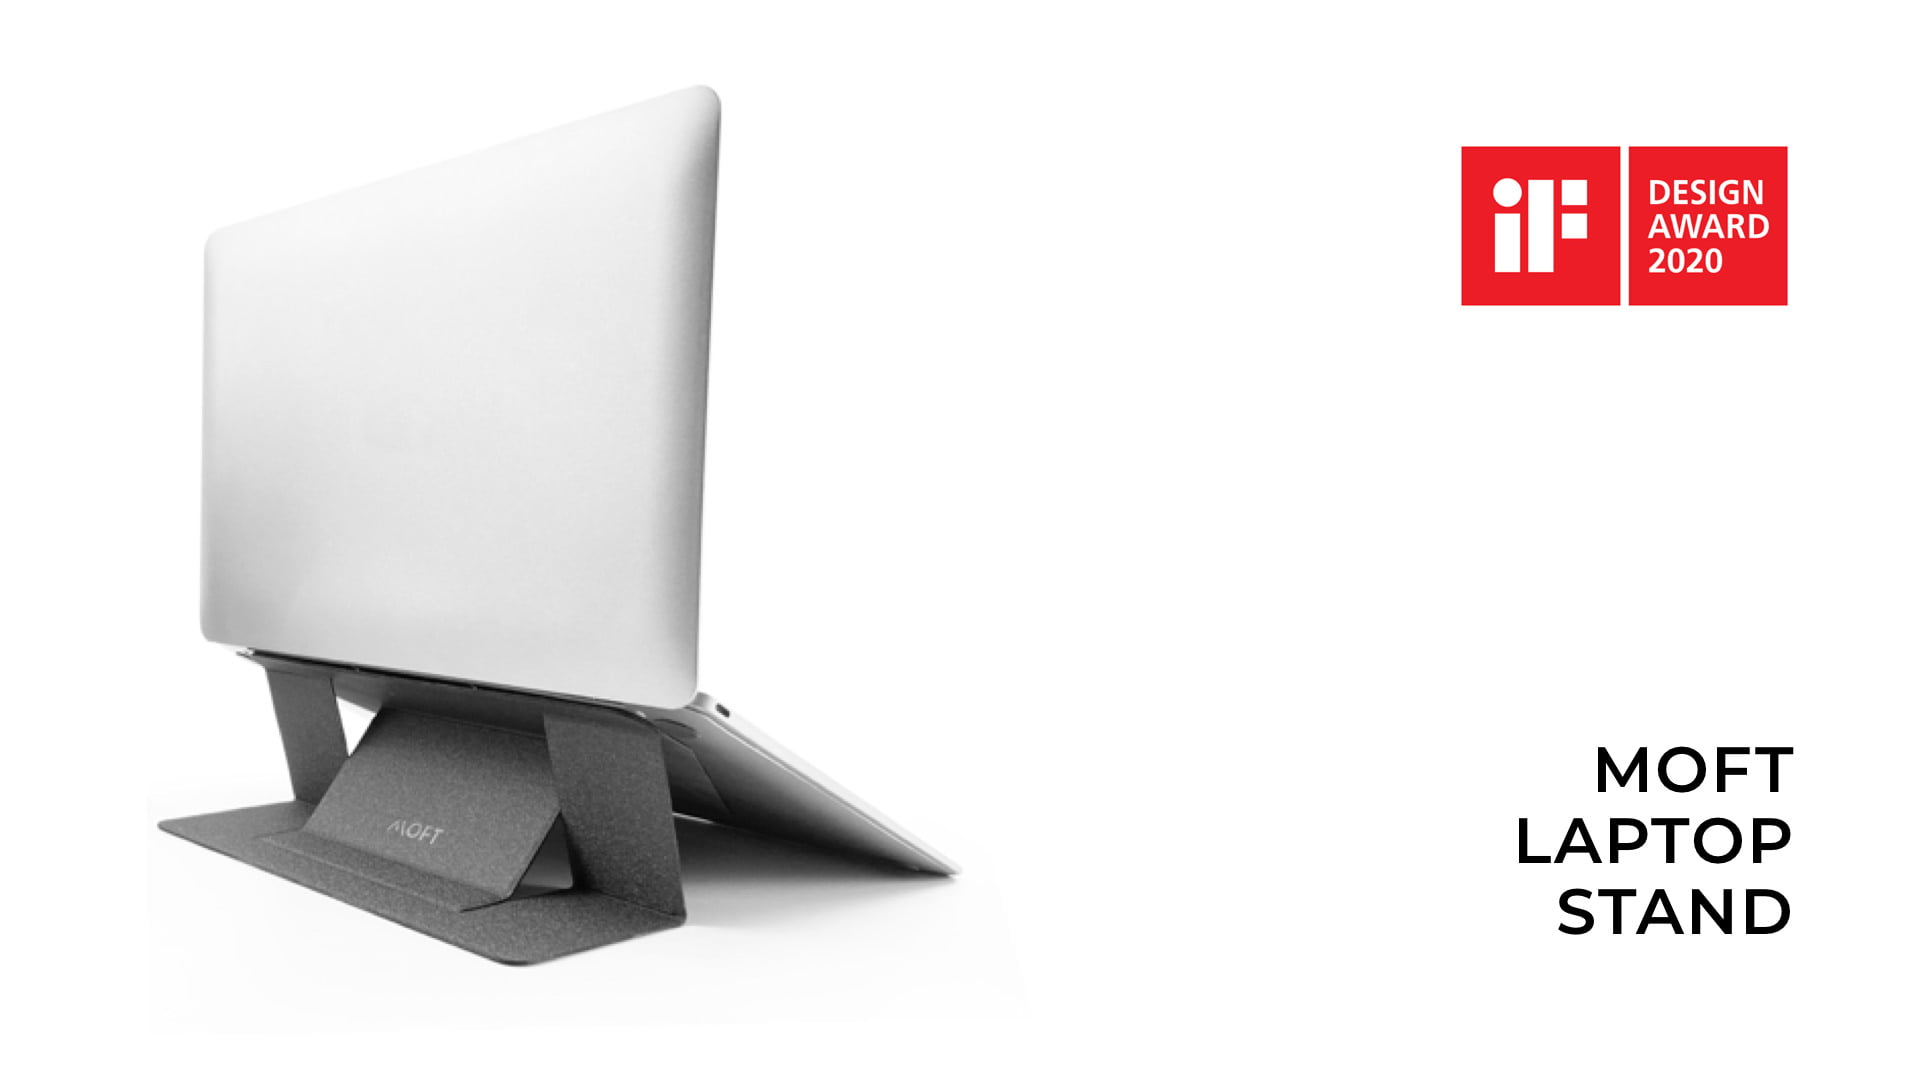 MOFT Wins iF Design Award for the World's First Adhesive Foldable Laptop Stand